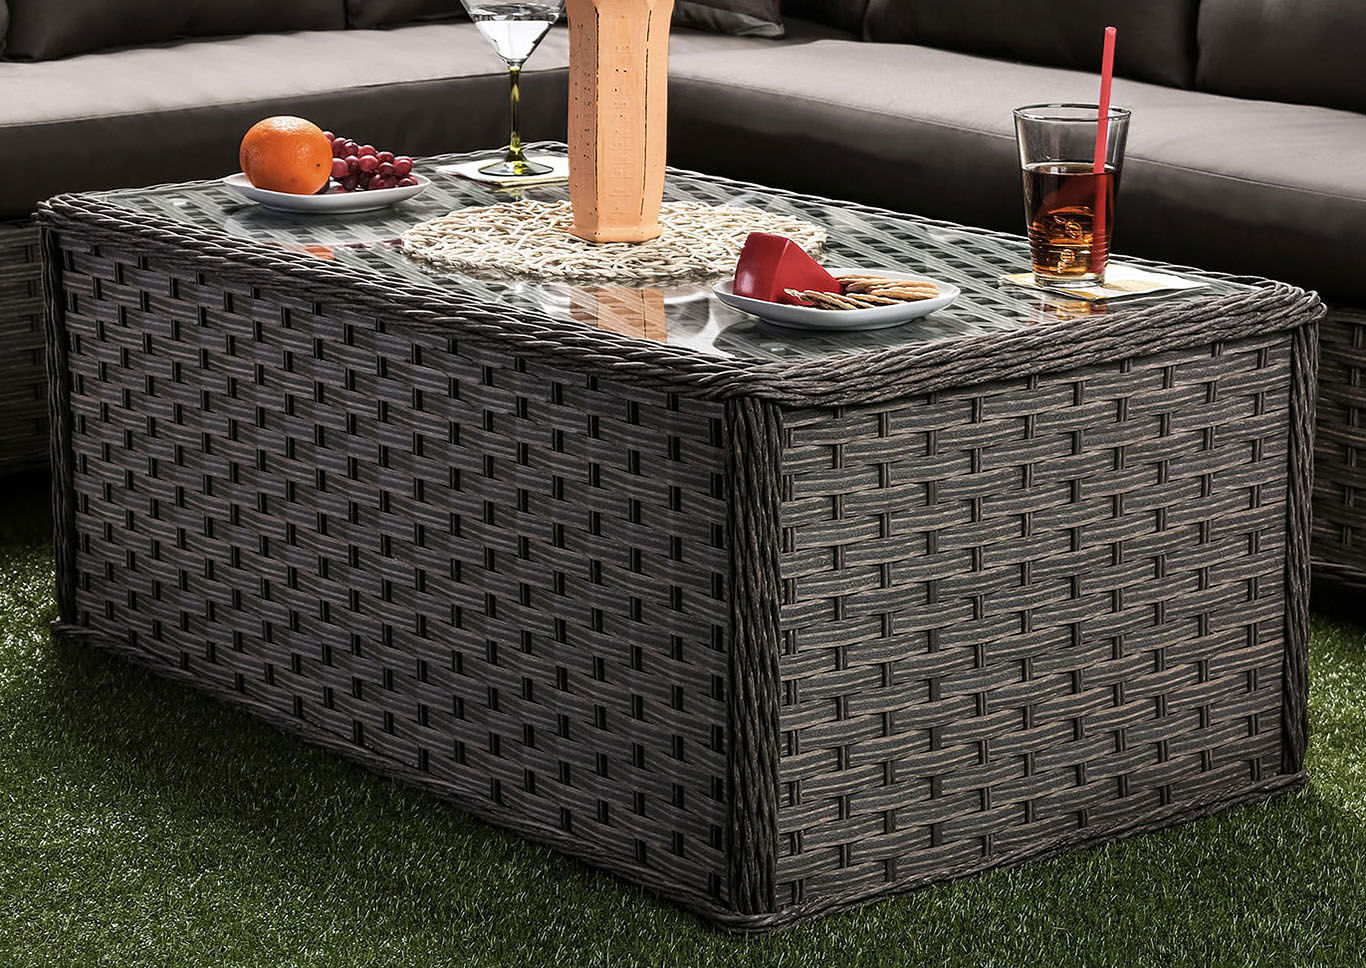 Moura Mocha Wicker Patio Table w/Glass Top,Furniture of America